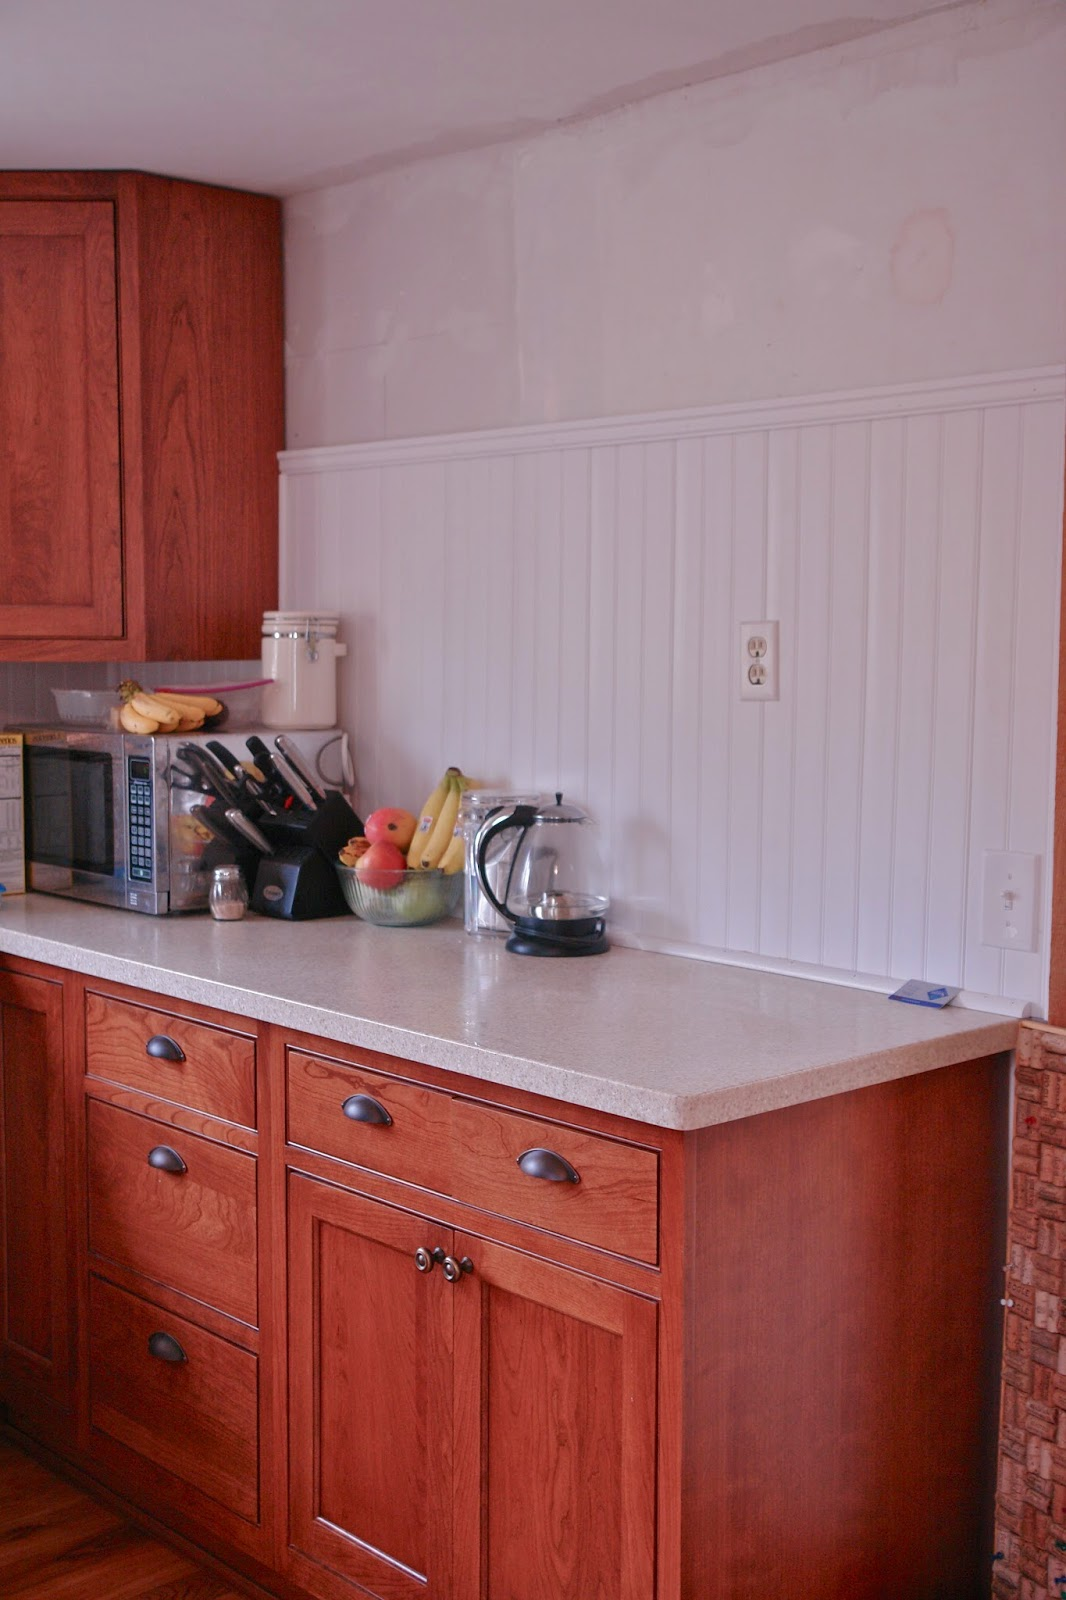 Wainscoting Kitchen Backsplash Redwoodshire Learning To Grow Growing To Learn Installing Pvc